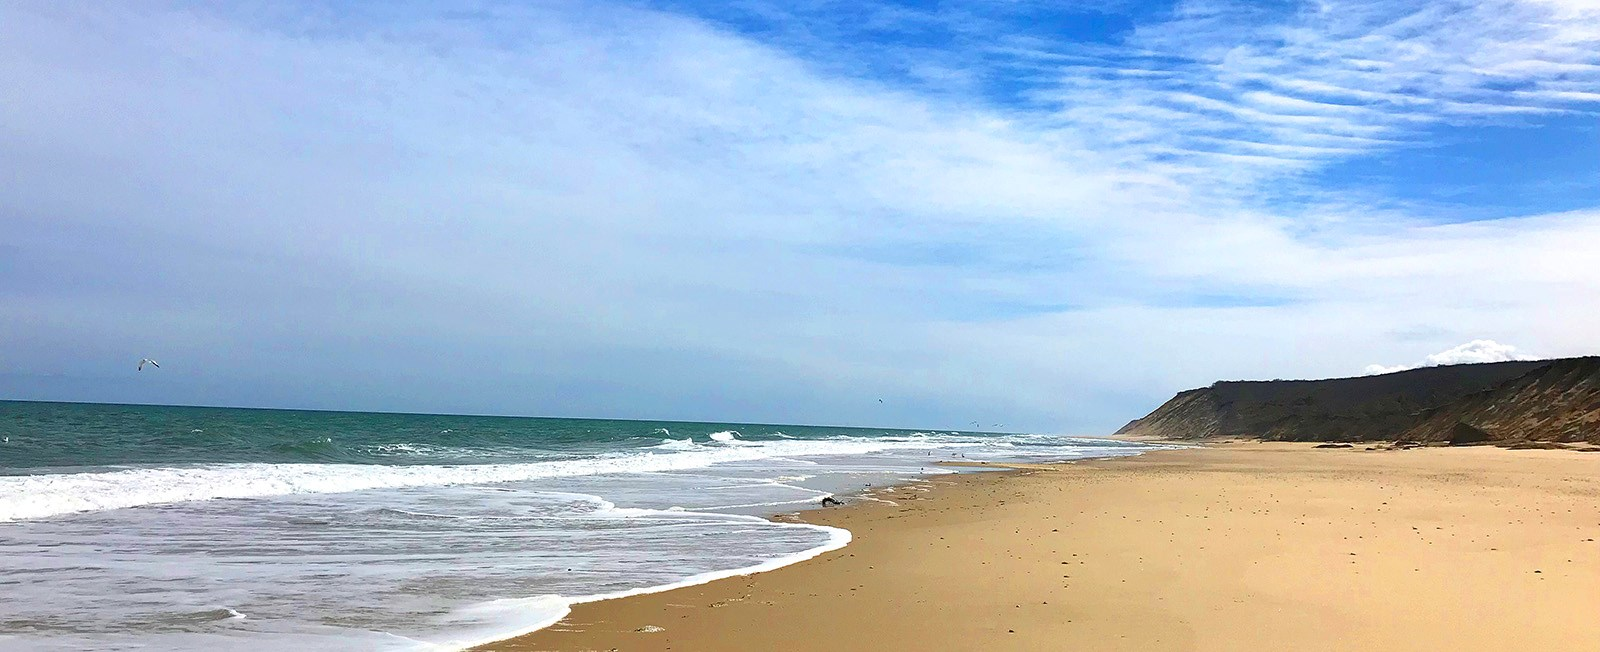 Don't miss these spots when you head to the Outer Cape!